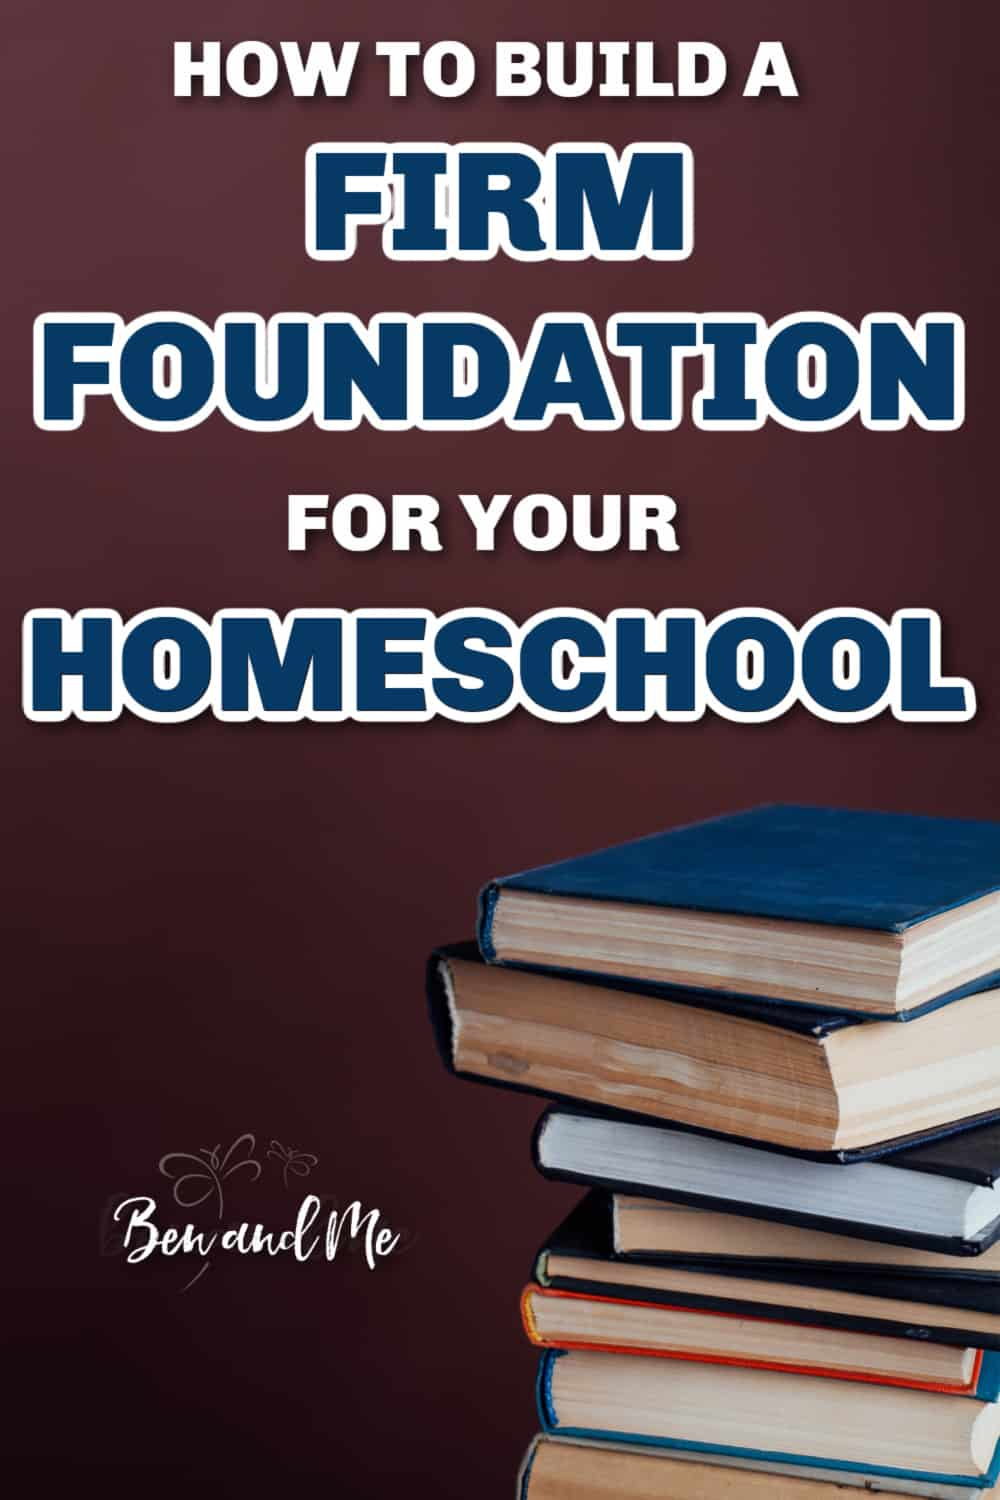 Learn how to build a firm foundation for your homeschool that goes beyond reading, writing, math, and science. #homeschool #howtohomeschool #christianhomeschooling